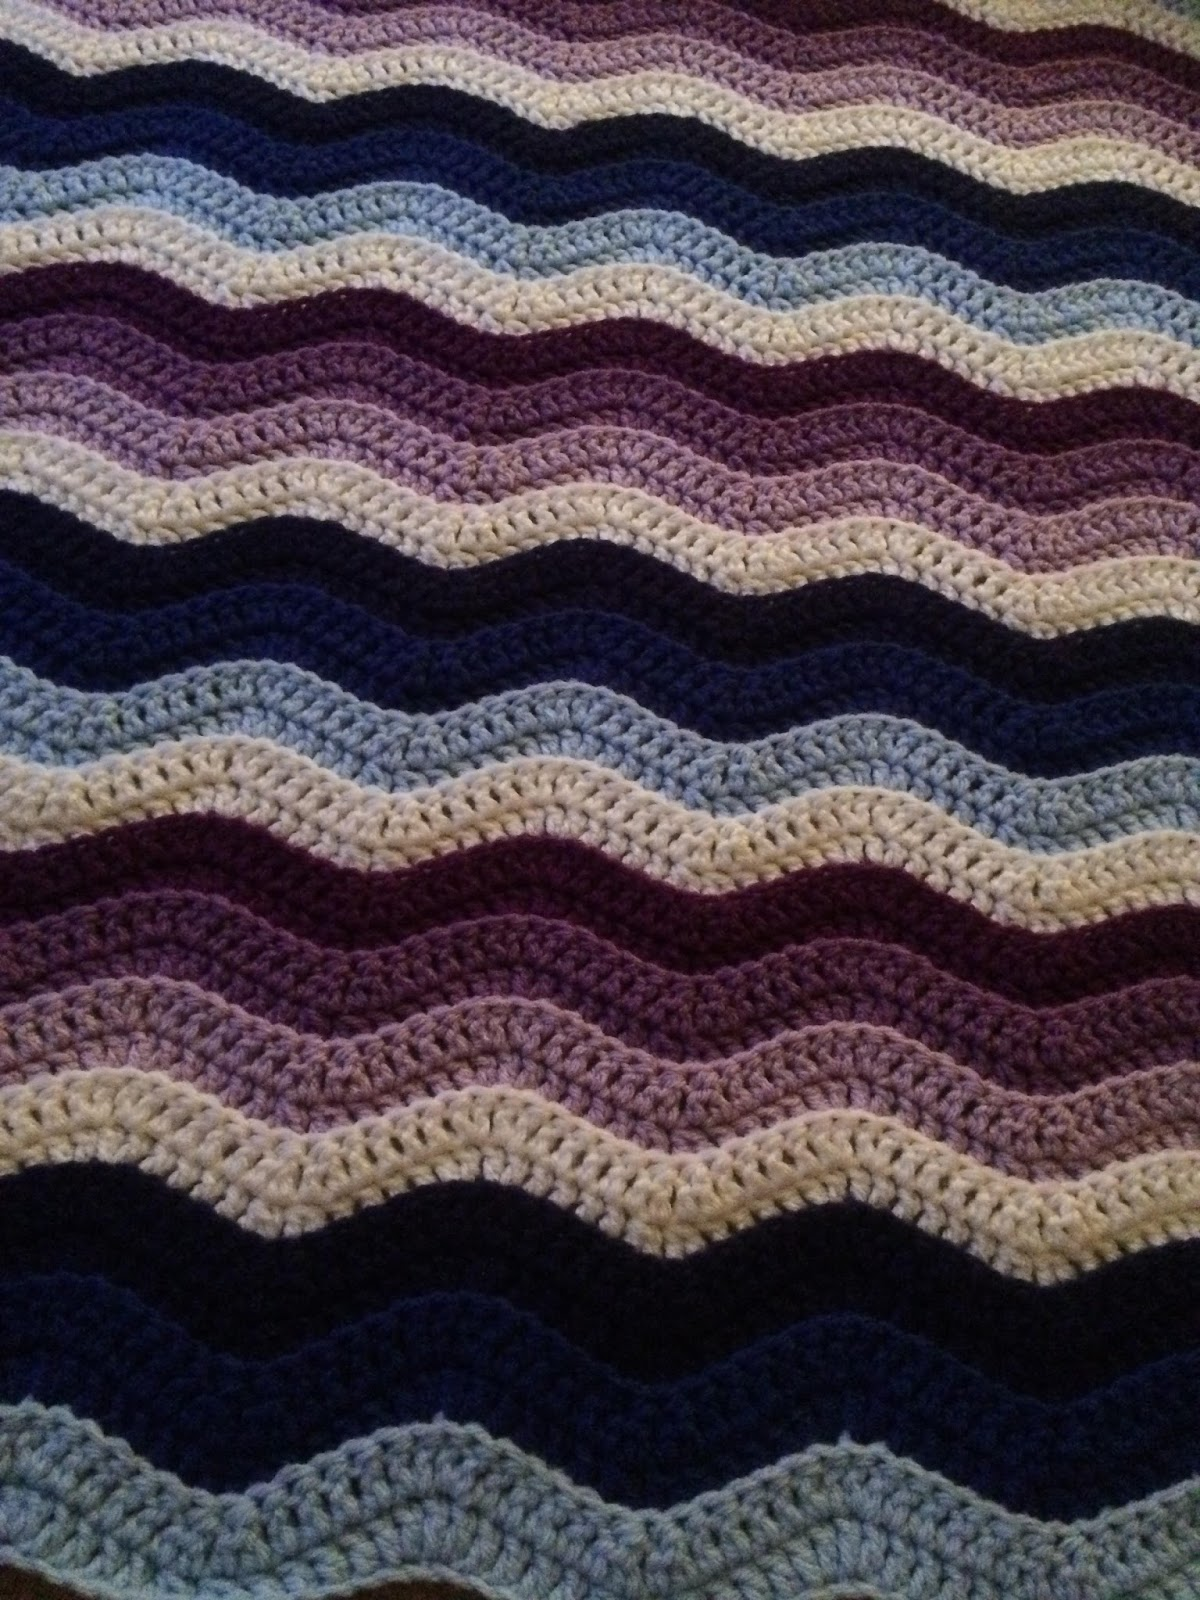 Hooked On Needles Two Crocheted Afghans Wavy Diagonal Stripes